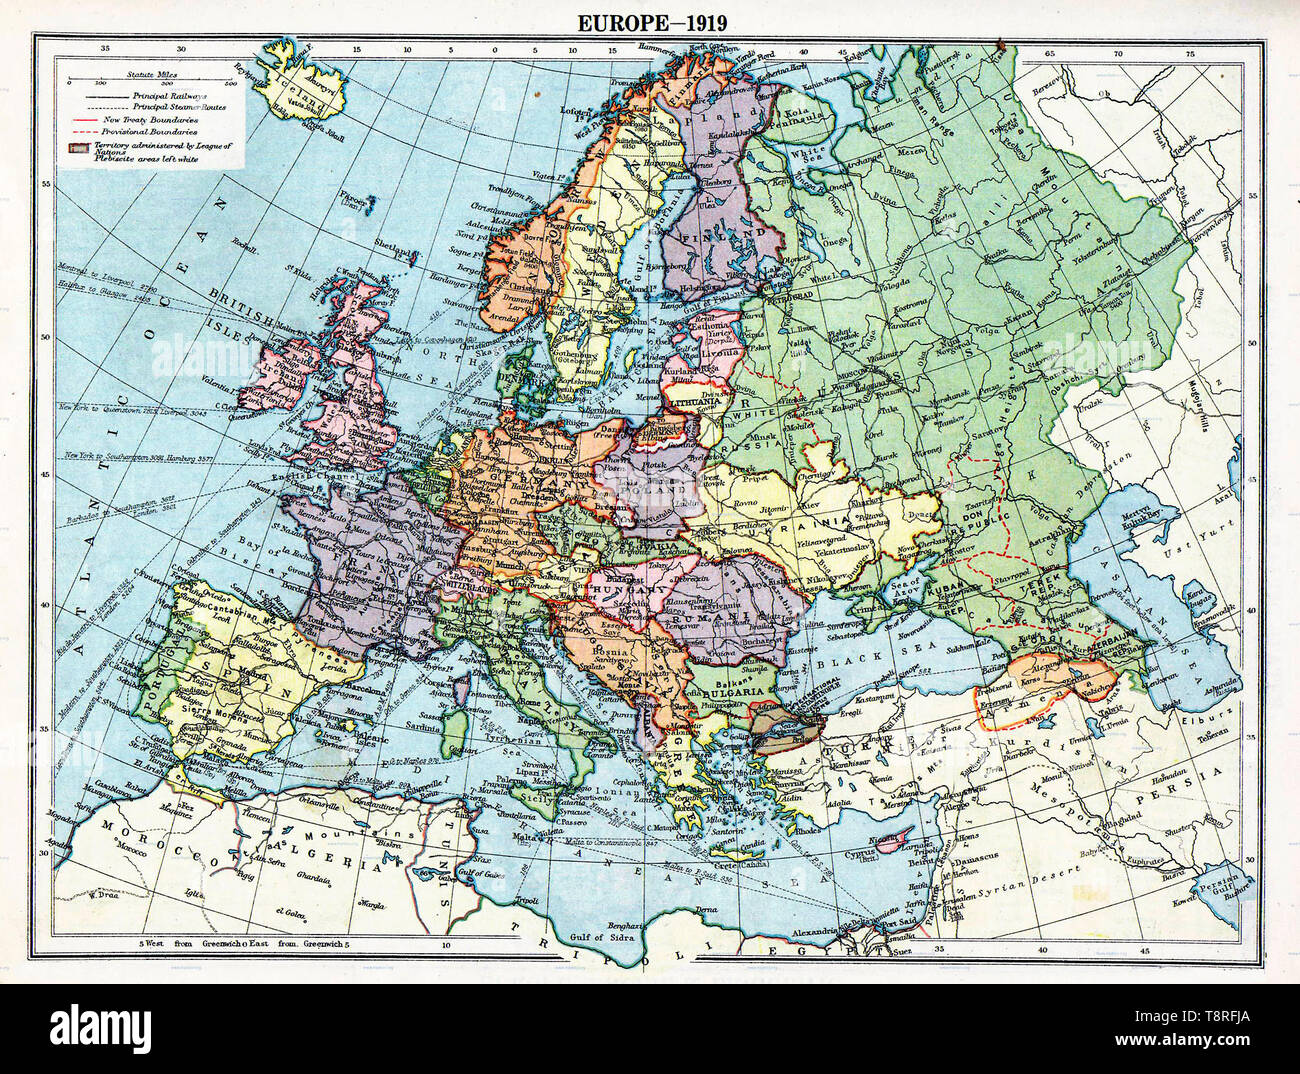 Map of Europe political divisions in 1919 (after the treaties of Brest-Litovsk and Versailles and before the treaties of Trianon, Riga, Kars and the establishment of Soviet Union and the republics of Ireland and Turkey. - Stock Image